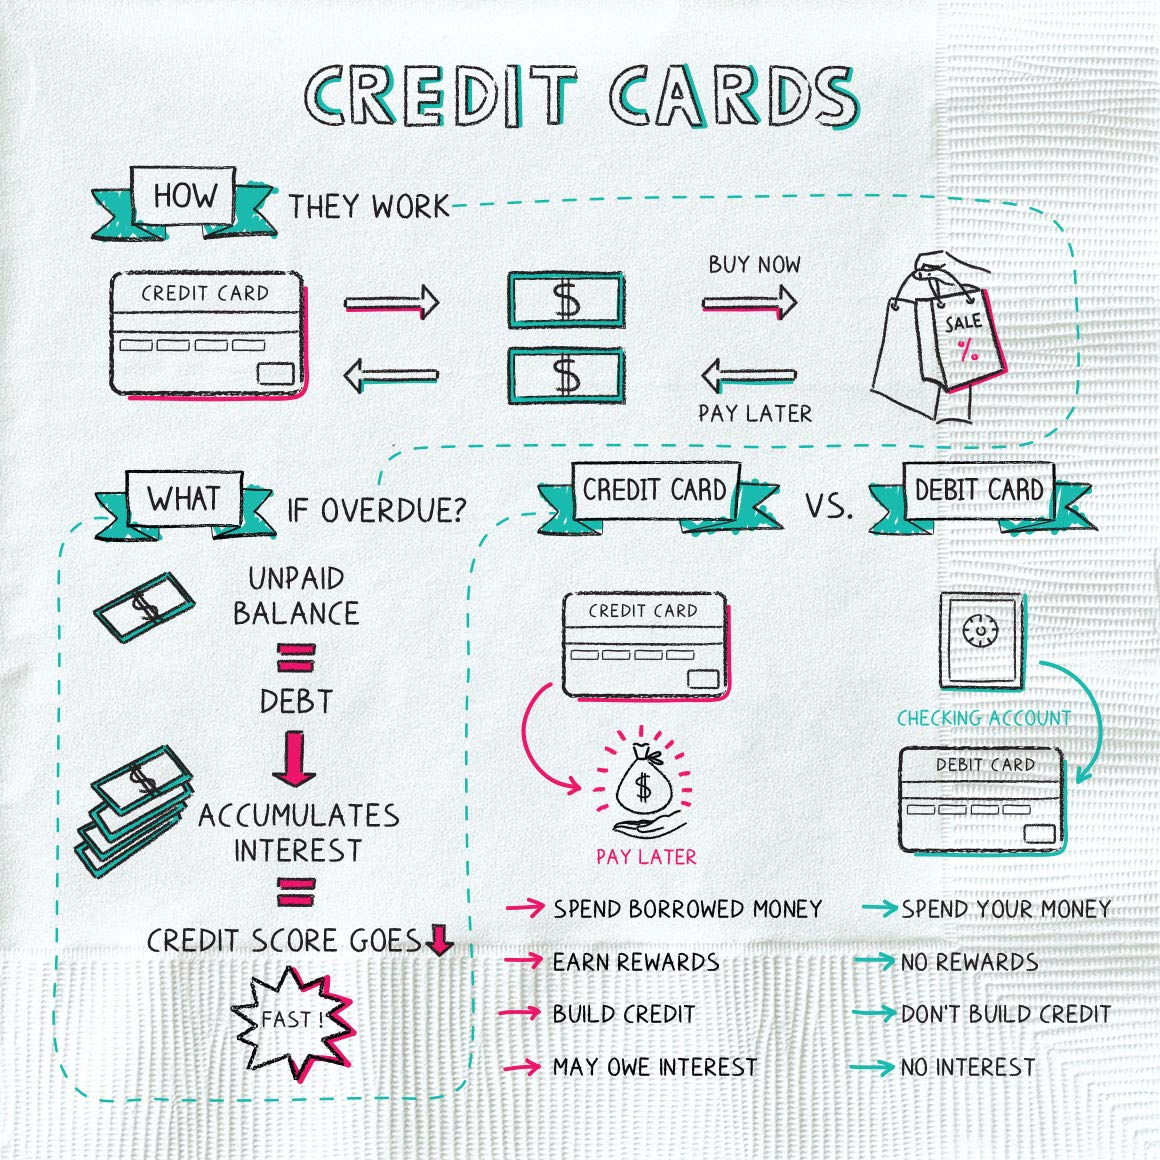 napkin finance - credit cardss